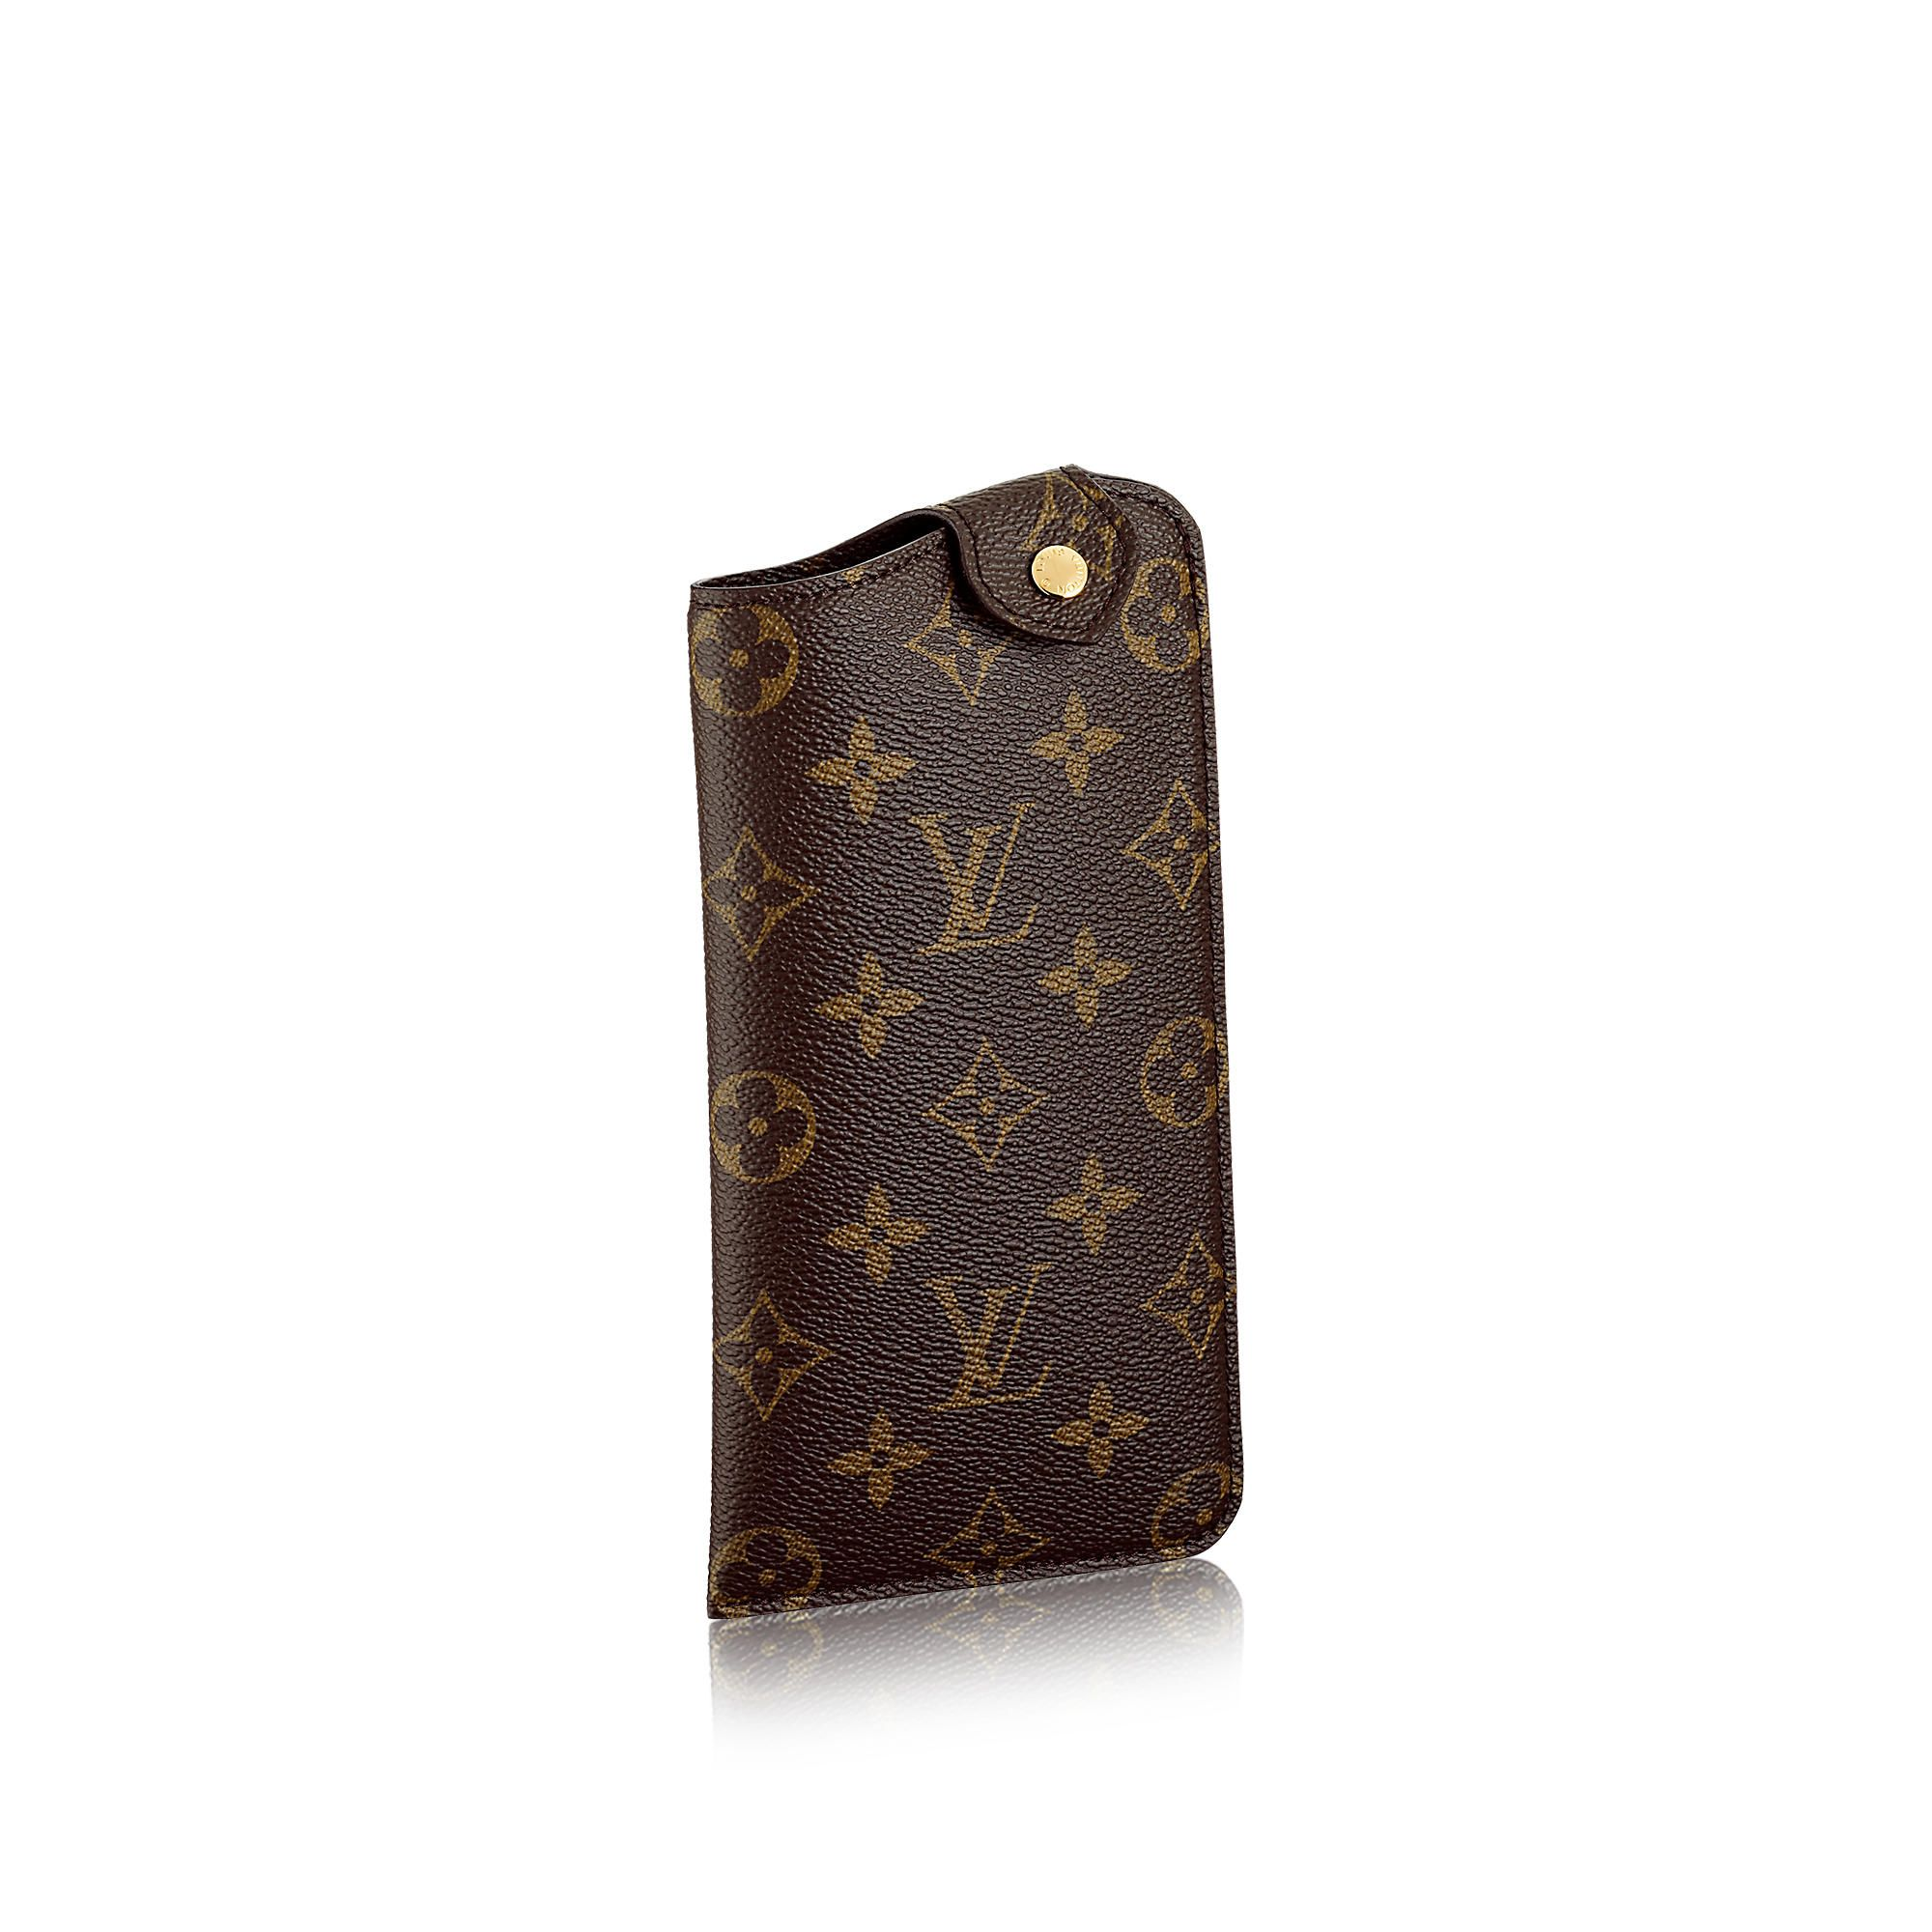 347e4ade9d6ac key product page share discover product Sunglasses Case Mm via Louis Vuitton